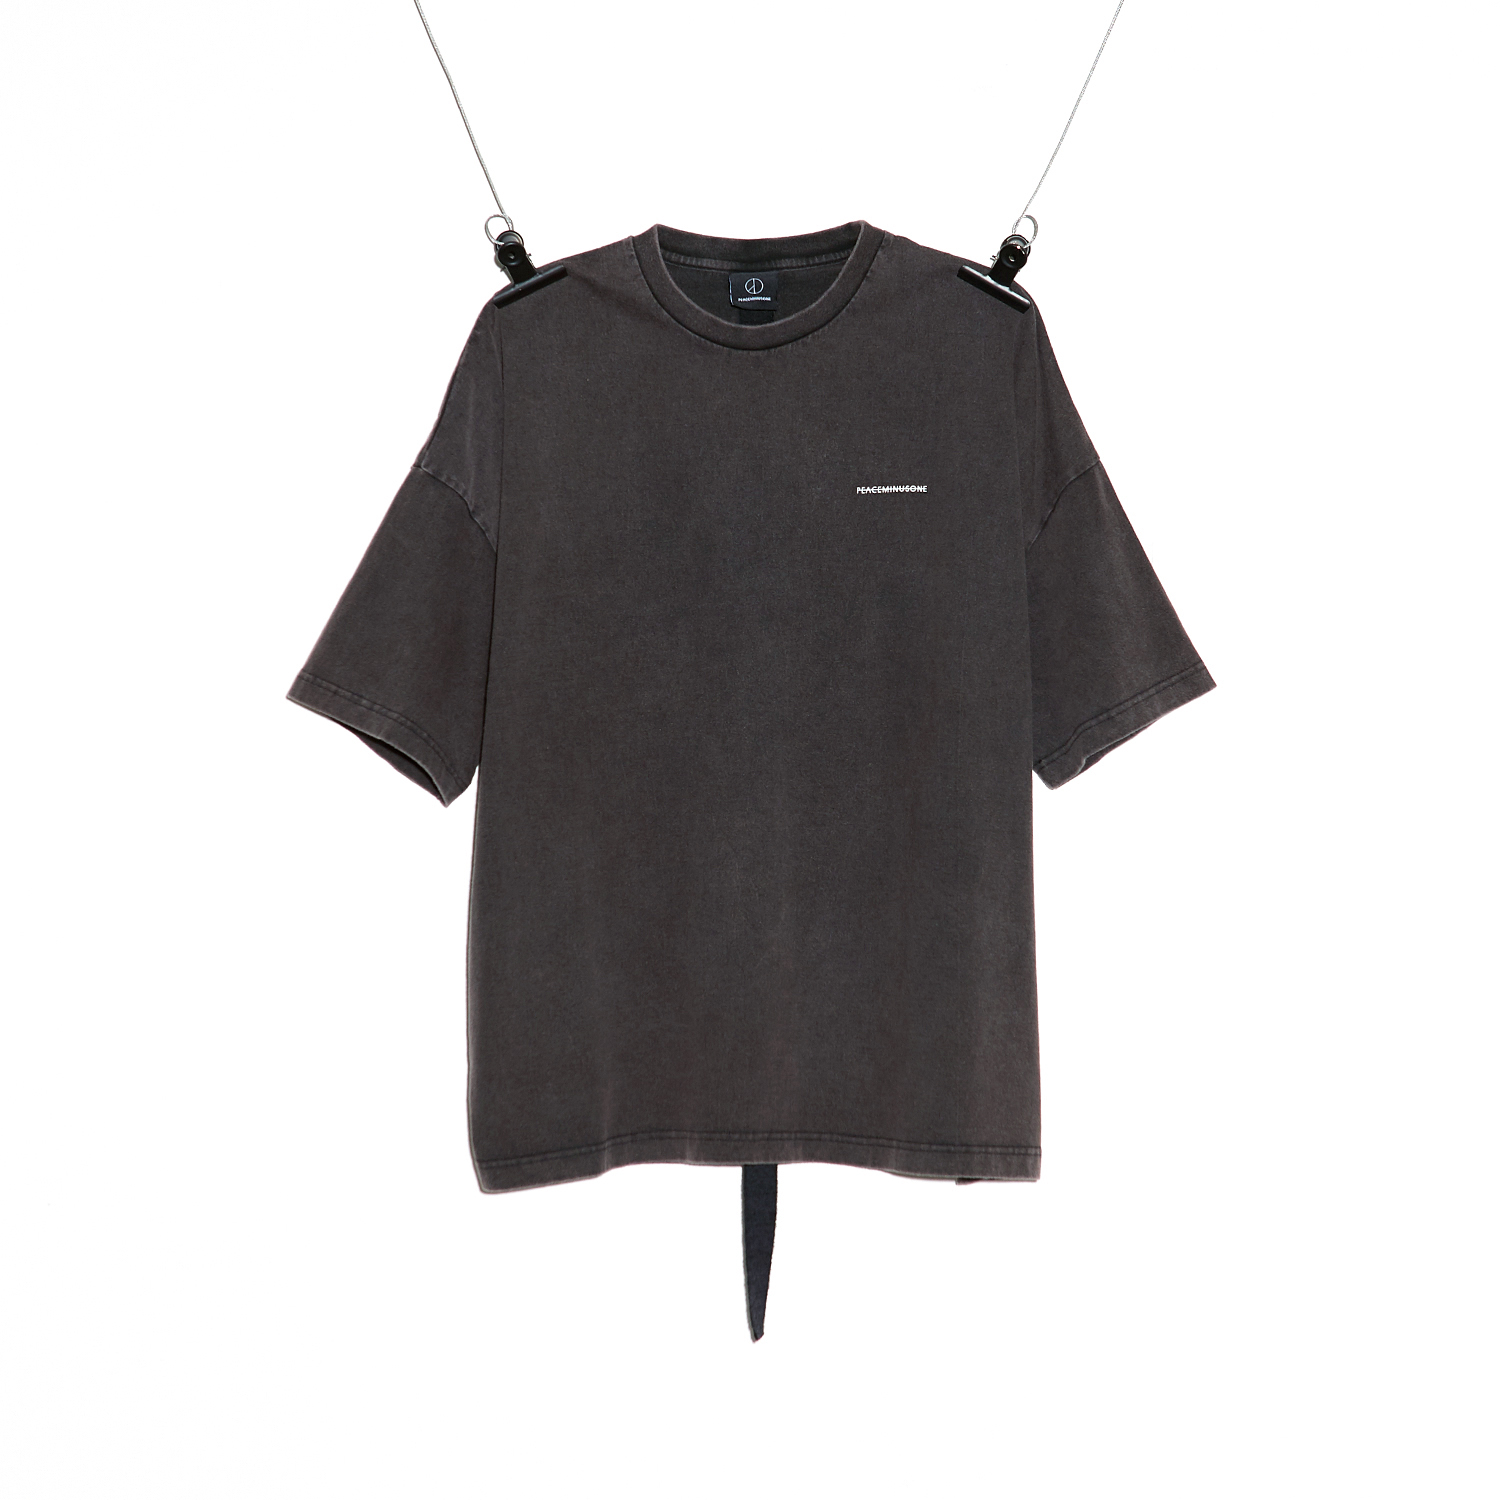 PMO VINTAGE T-SHIRT #1 CHARCOAL GREY